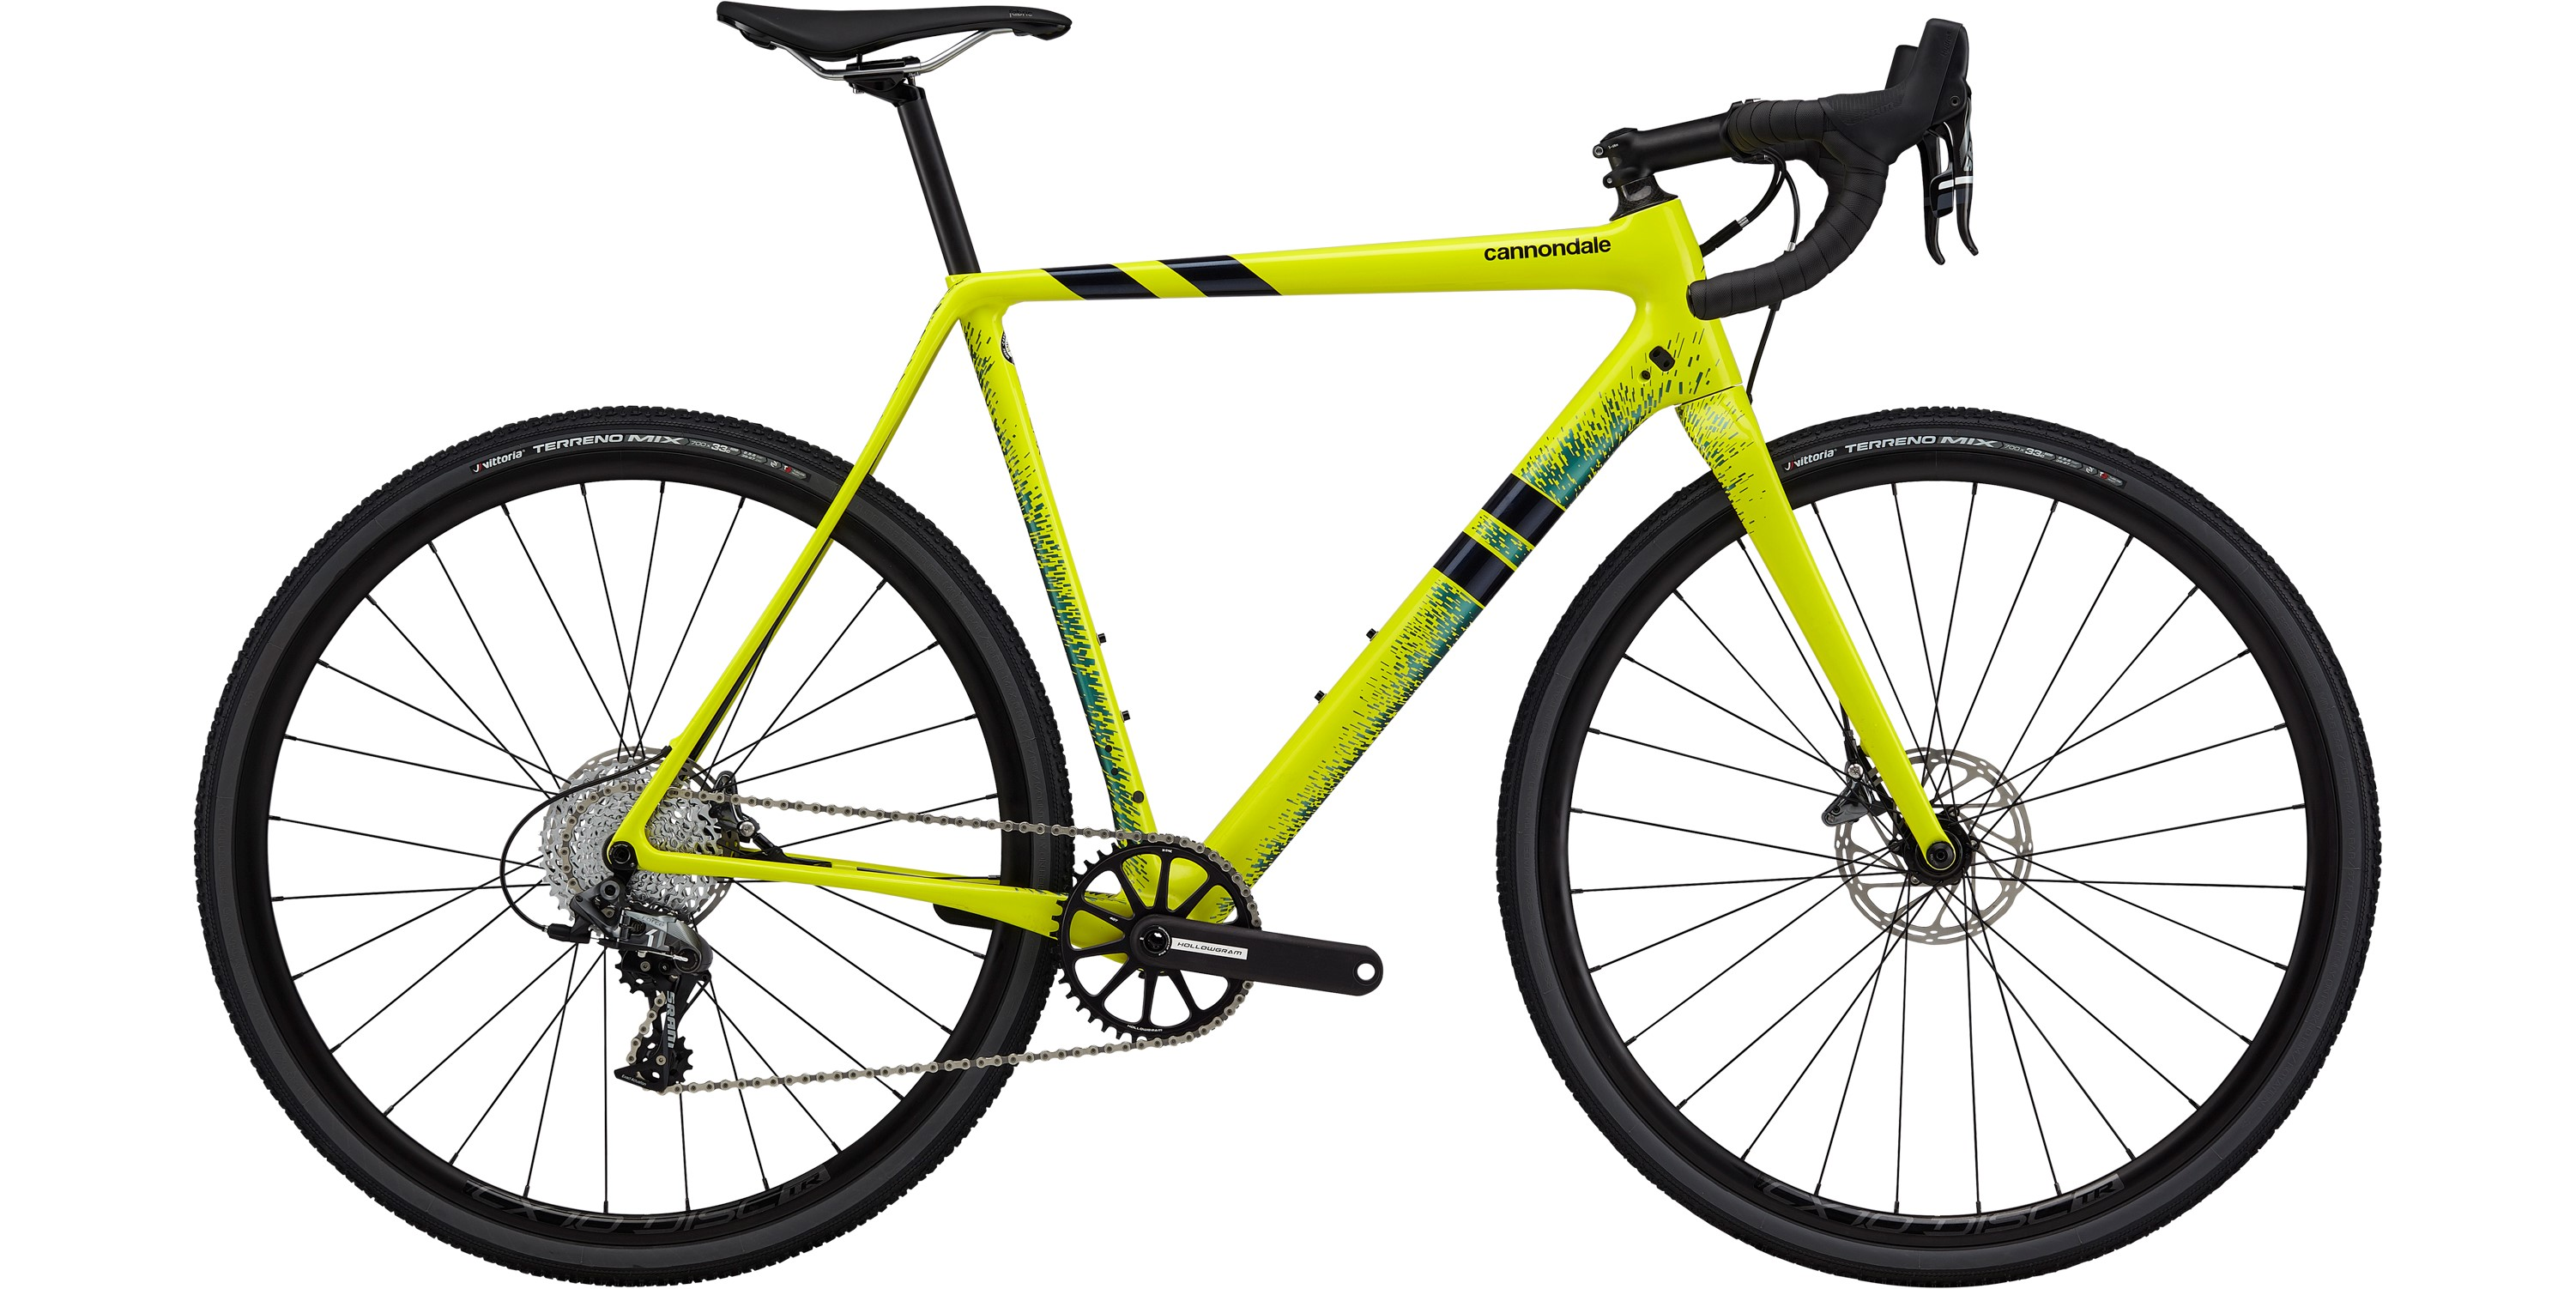 2020 Cannondale SuperX Force 1 Carbon Cyclocross Bike in Yellow | Cross-cykler